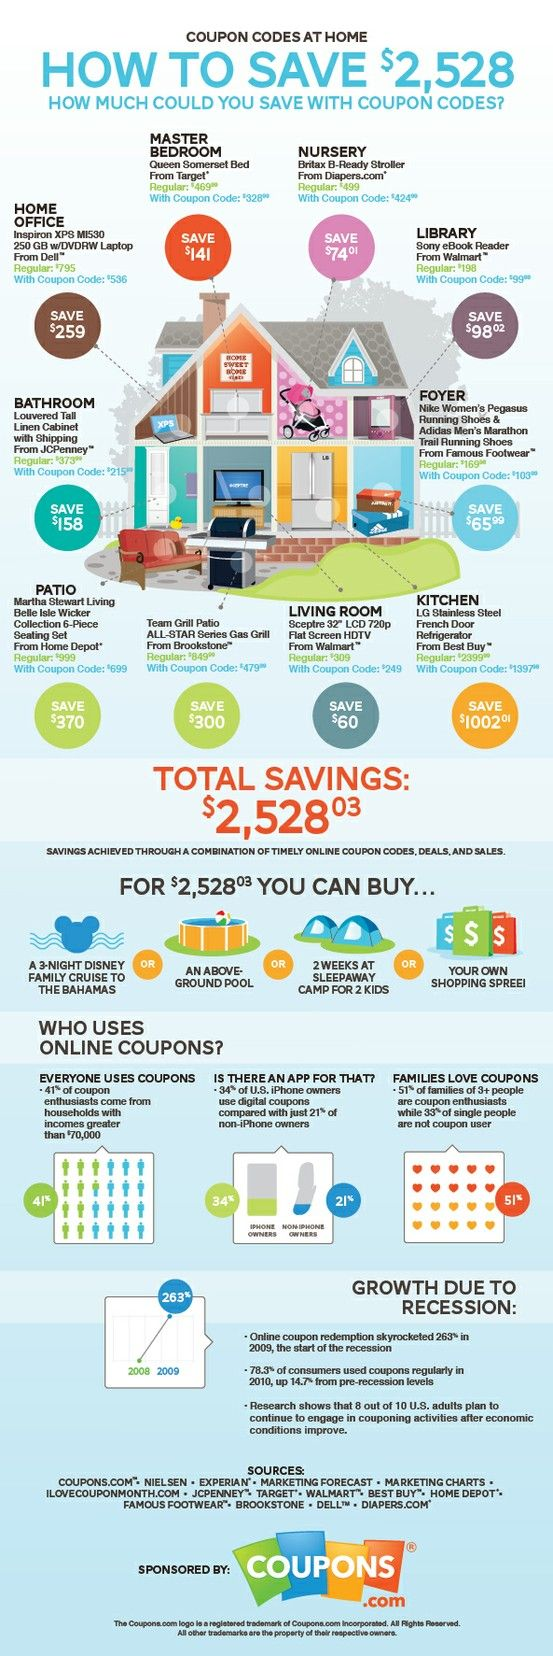 Budget discount coupons